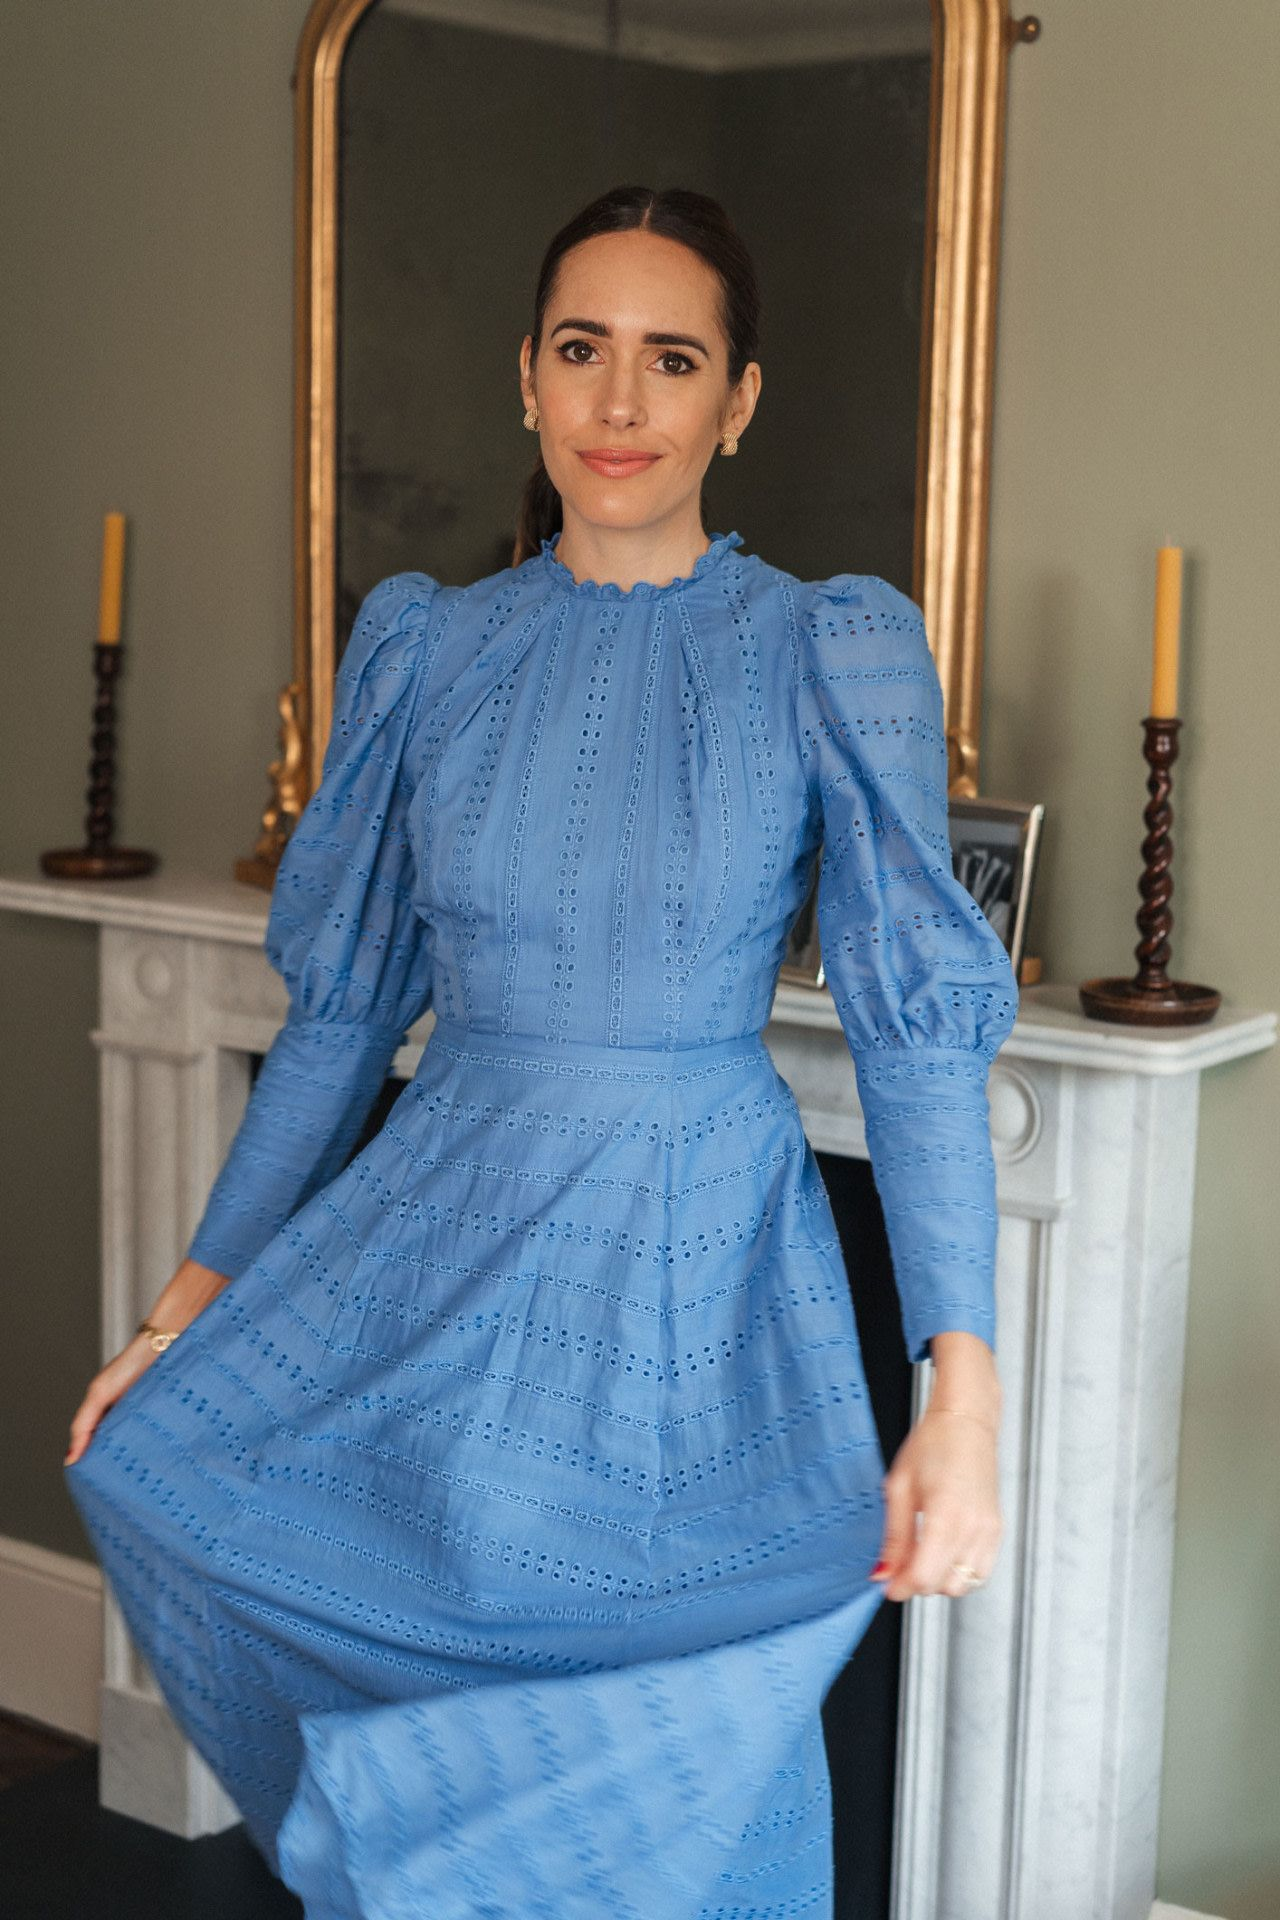 High Necks And Puff Sleeves My New Obsession Front Roe By Louise Roe Mini Dress With Sleeves Puff Sleeve Dresses Puff Sleeve [ 1920 x 1280 Pixel ]